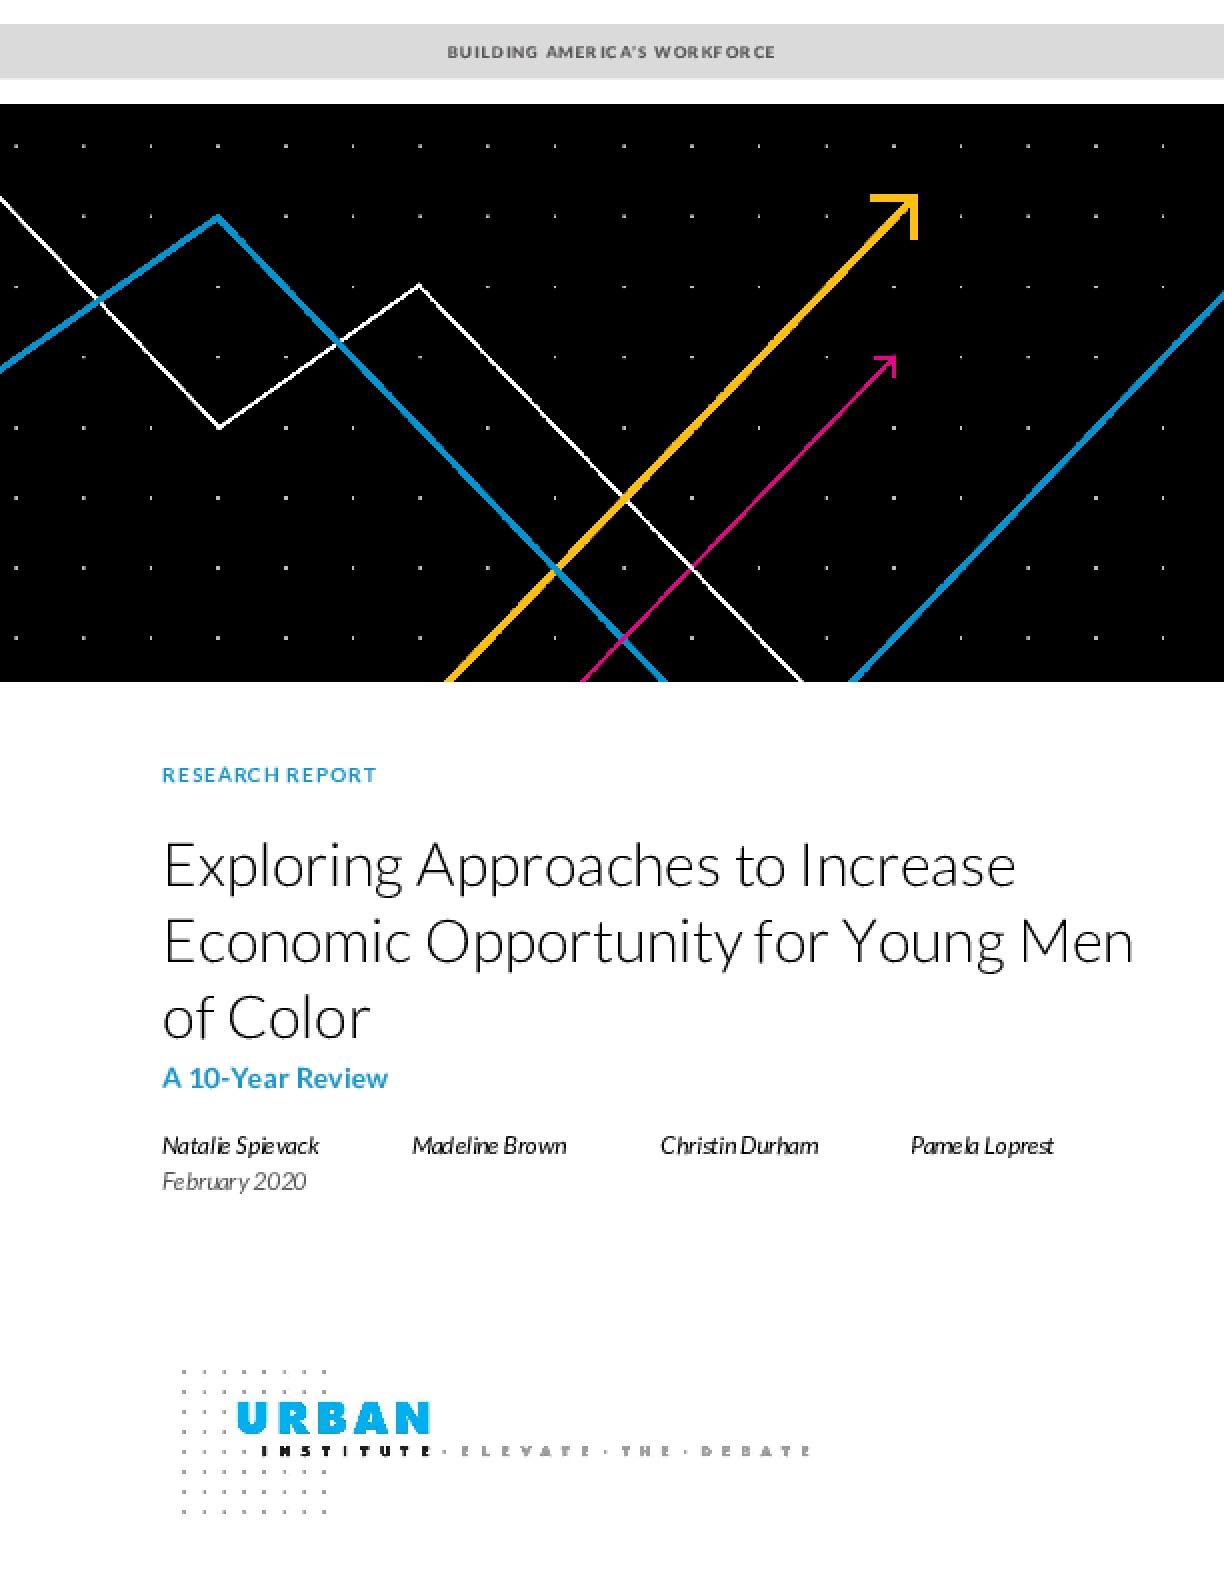 Exploring Approaches to Increase Economic Opportunity for Young Men of Color: A 10-Year Review